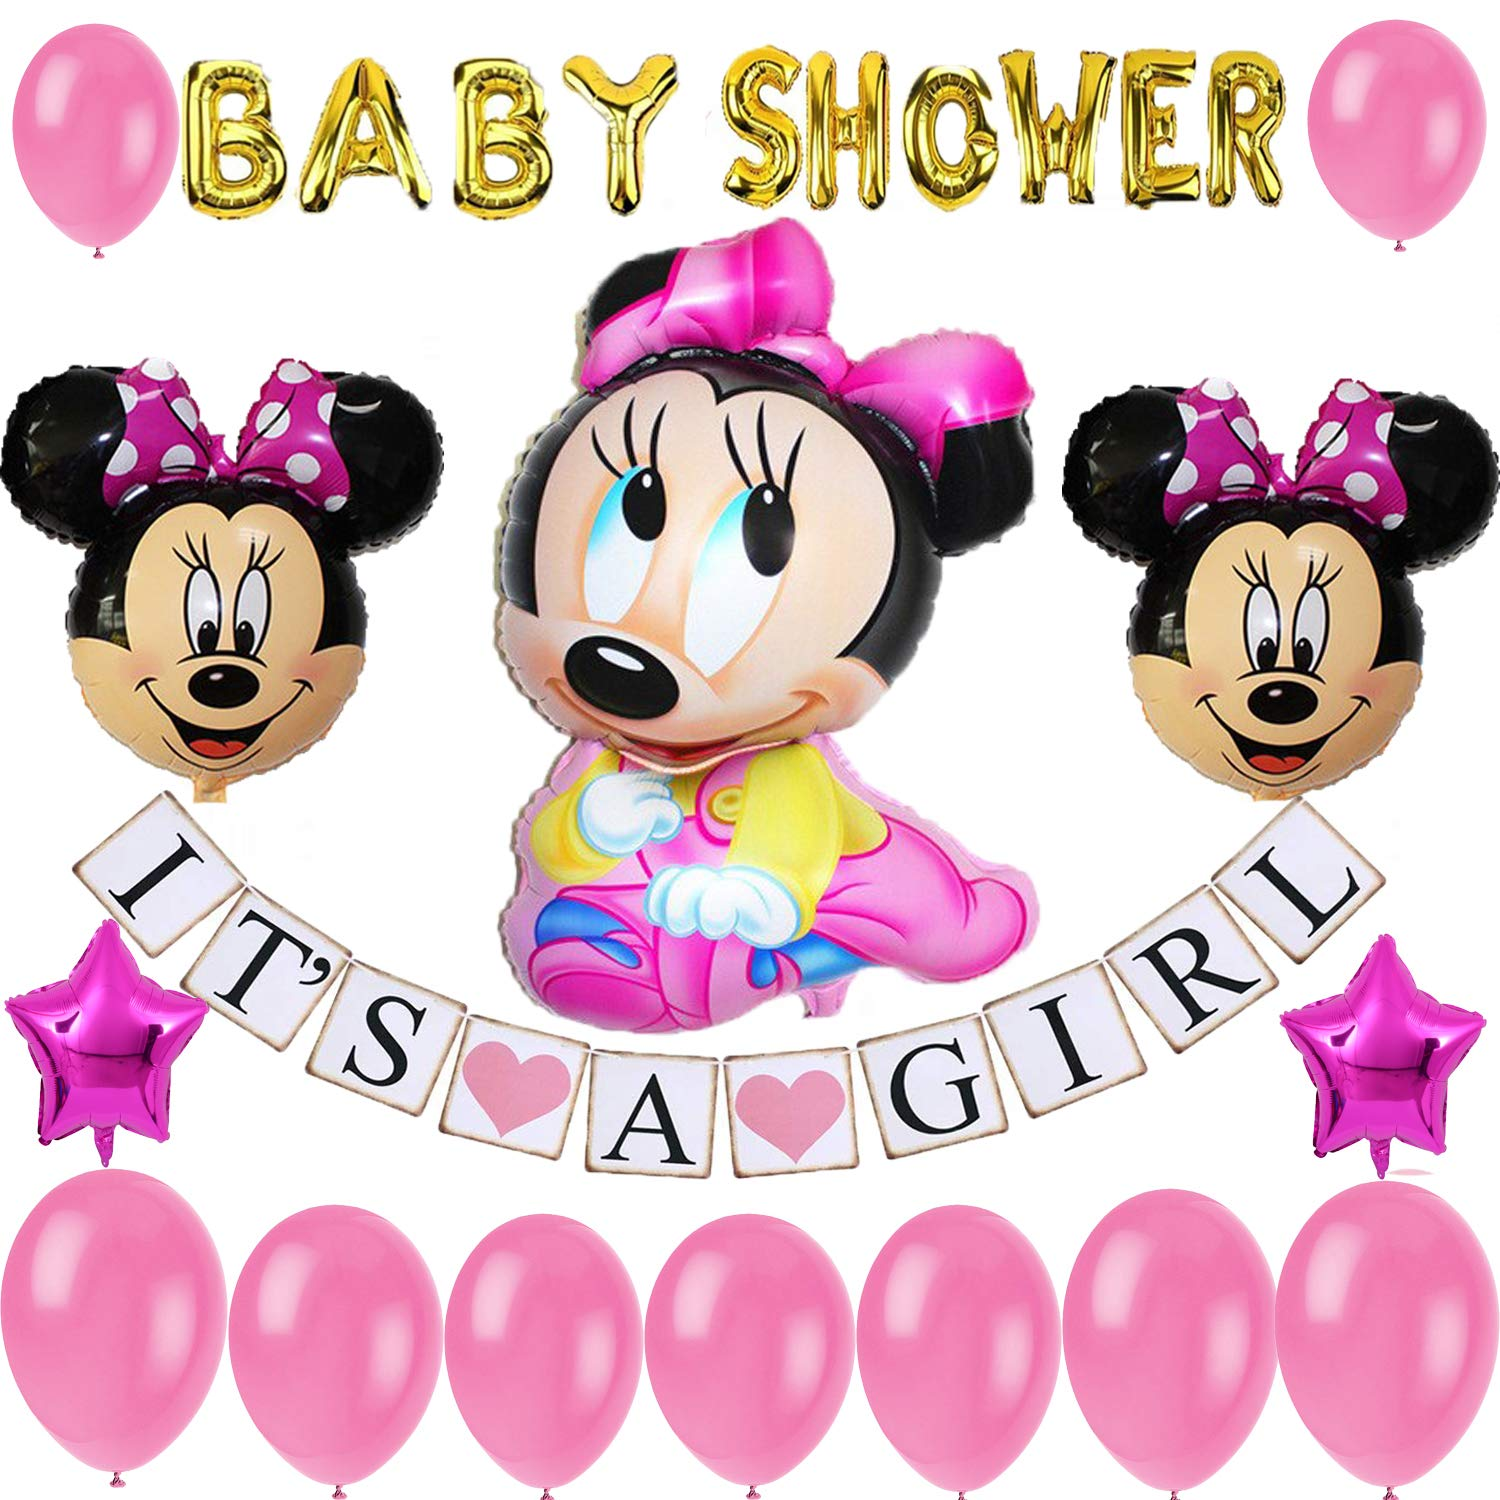 Minnie Mouse Baby Shower Decoration Packages  from m.media-amazon.com